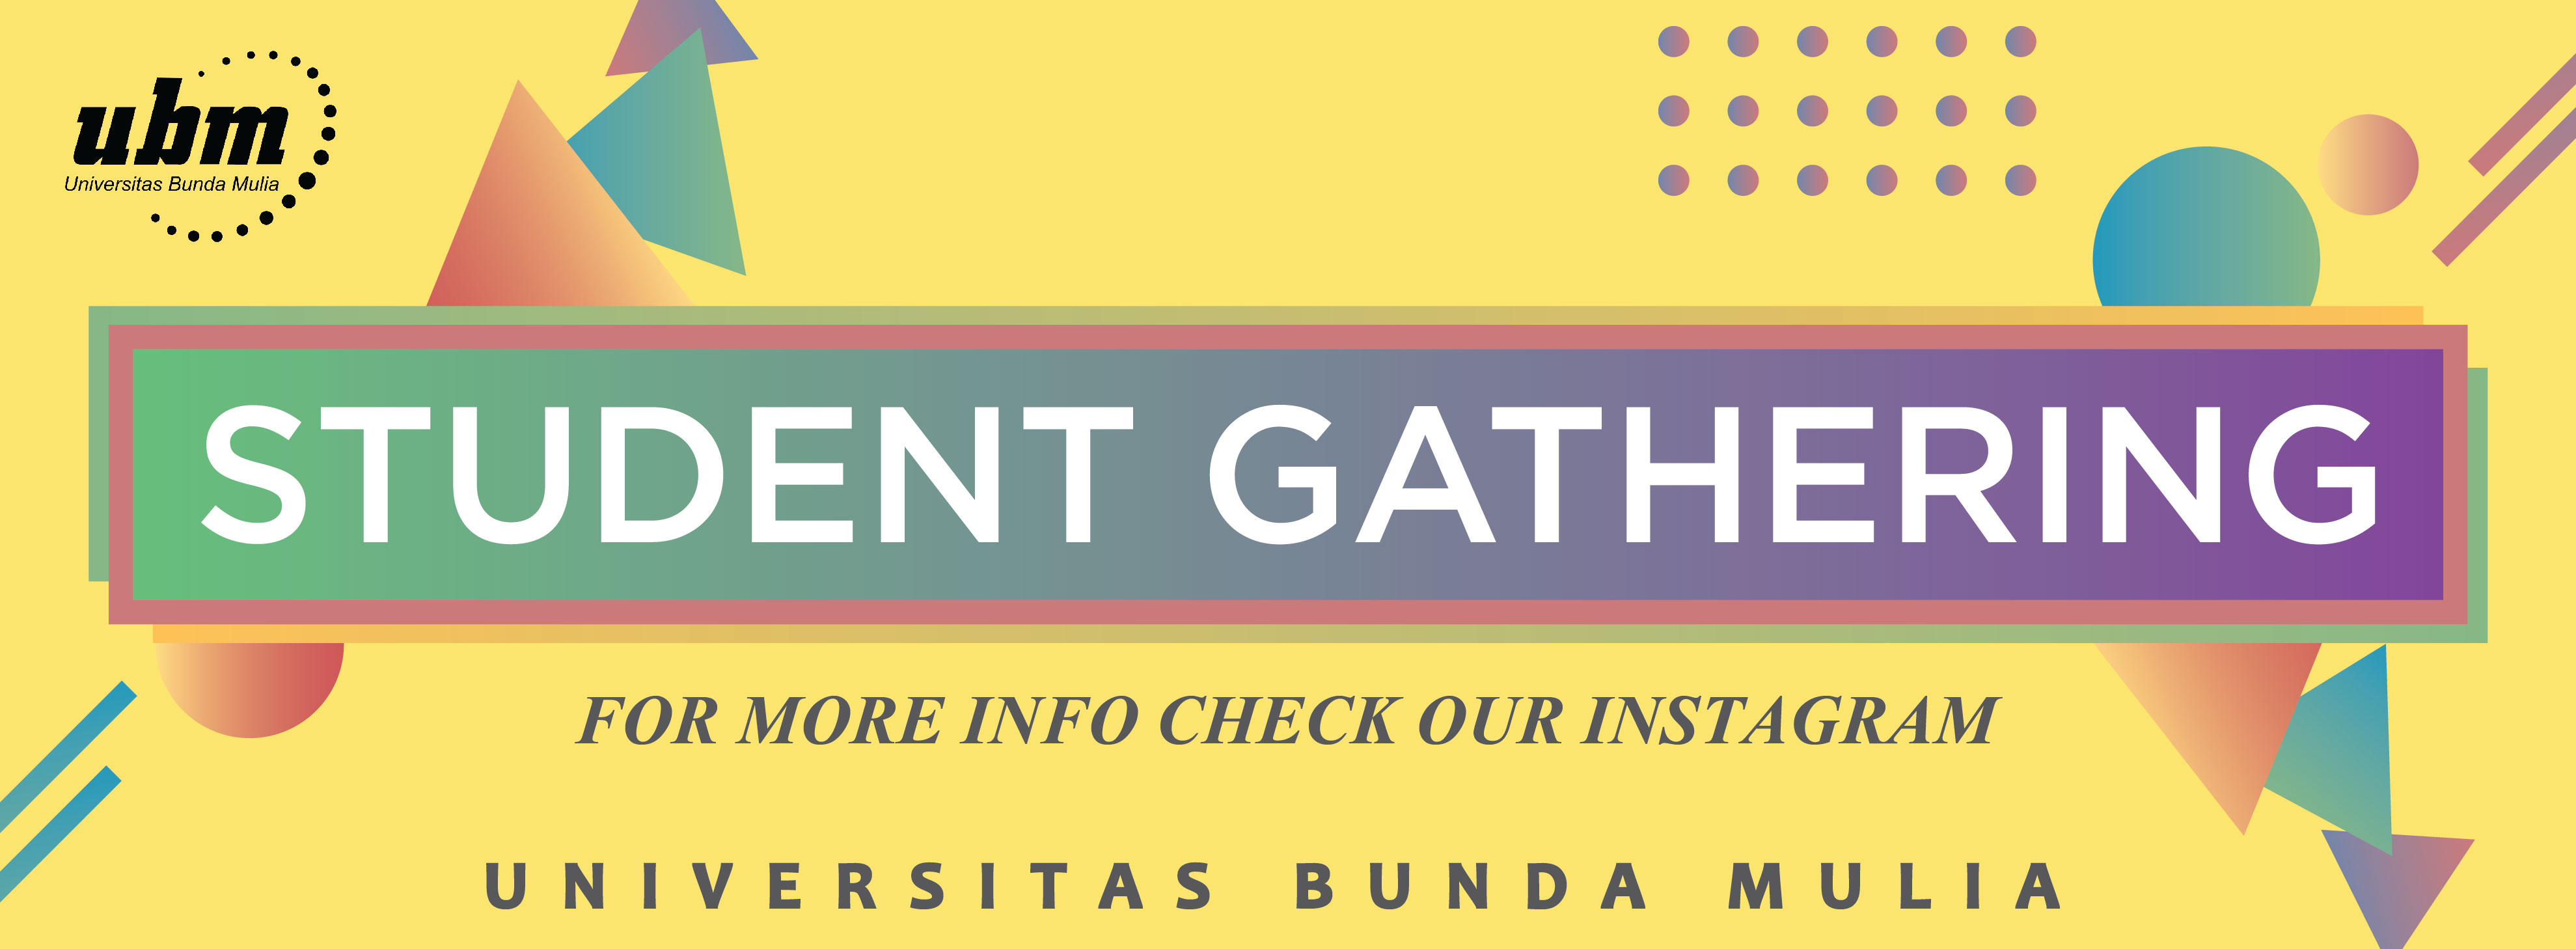 Web-Banner-Student-Gathering-02